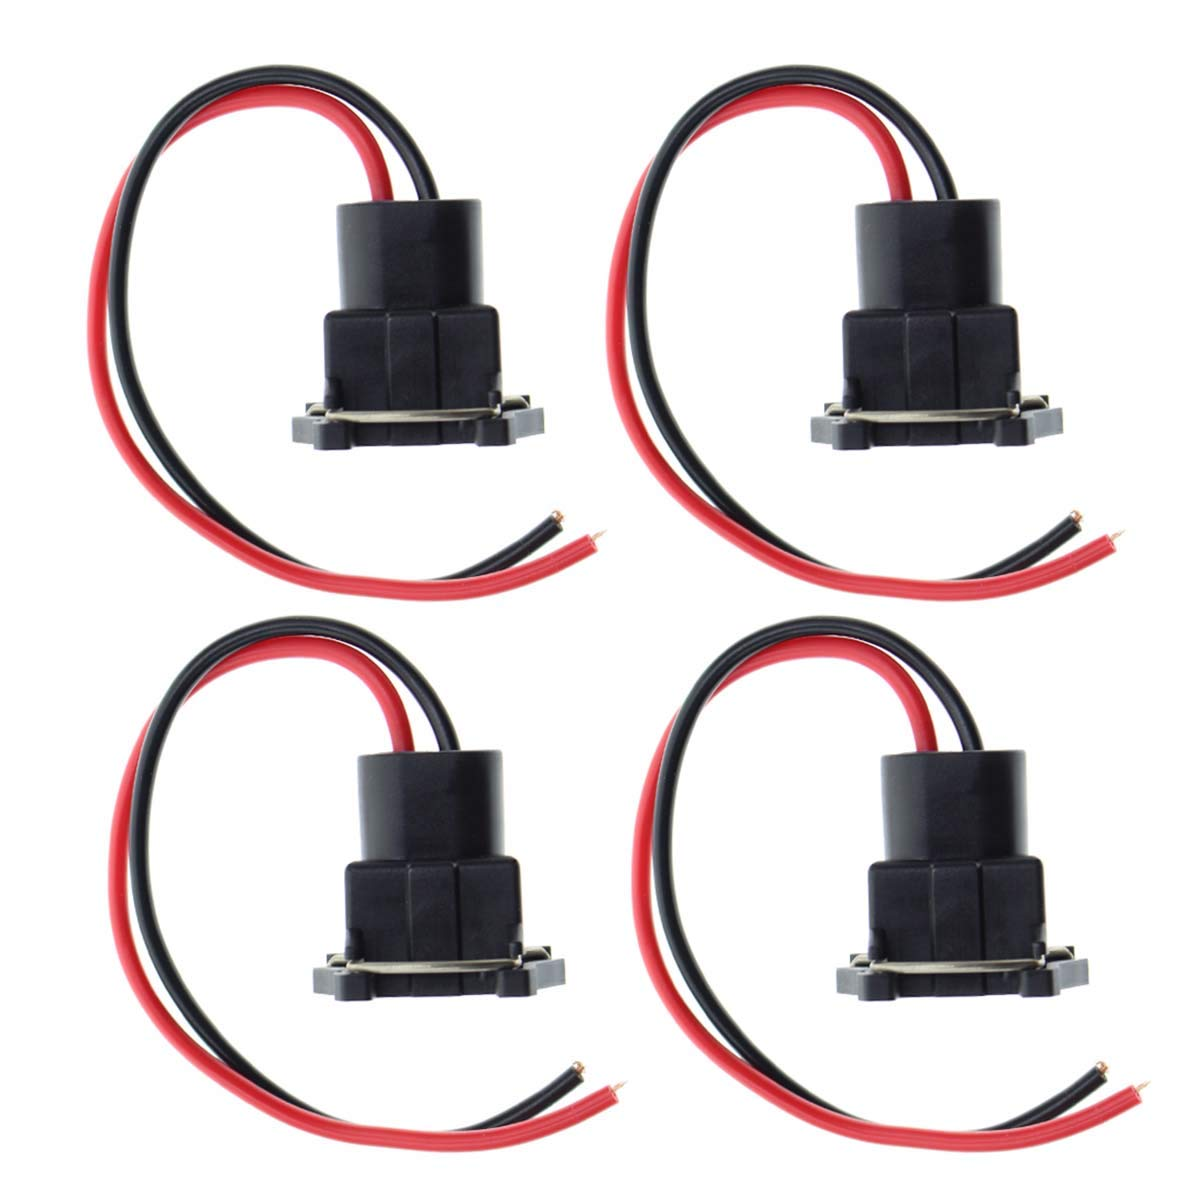 4pcs MOTOALL Fuel Injector Connector EV1 OBD1 Plug Wire Harness Pigtail Wiring Loom Clip for TPI LT1 LS1 LS6 RC TRE